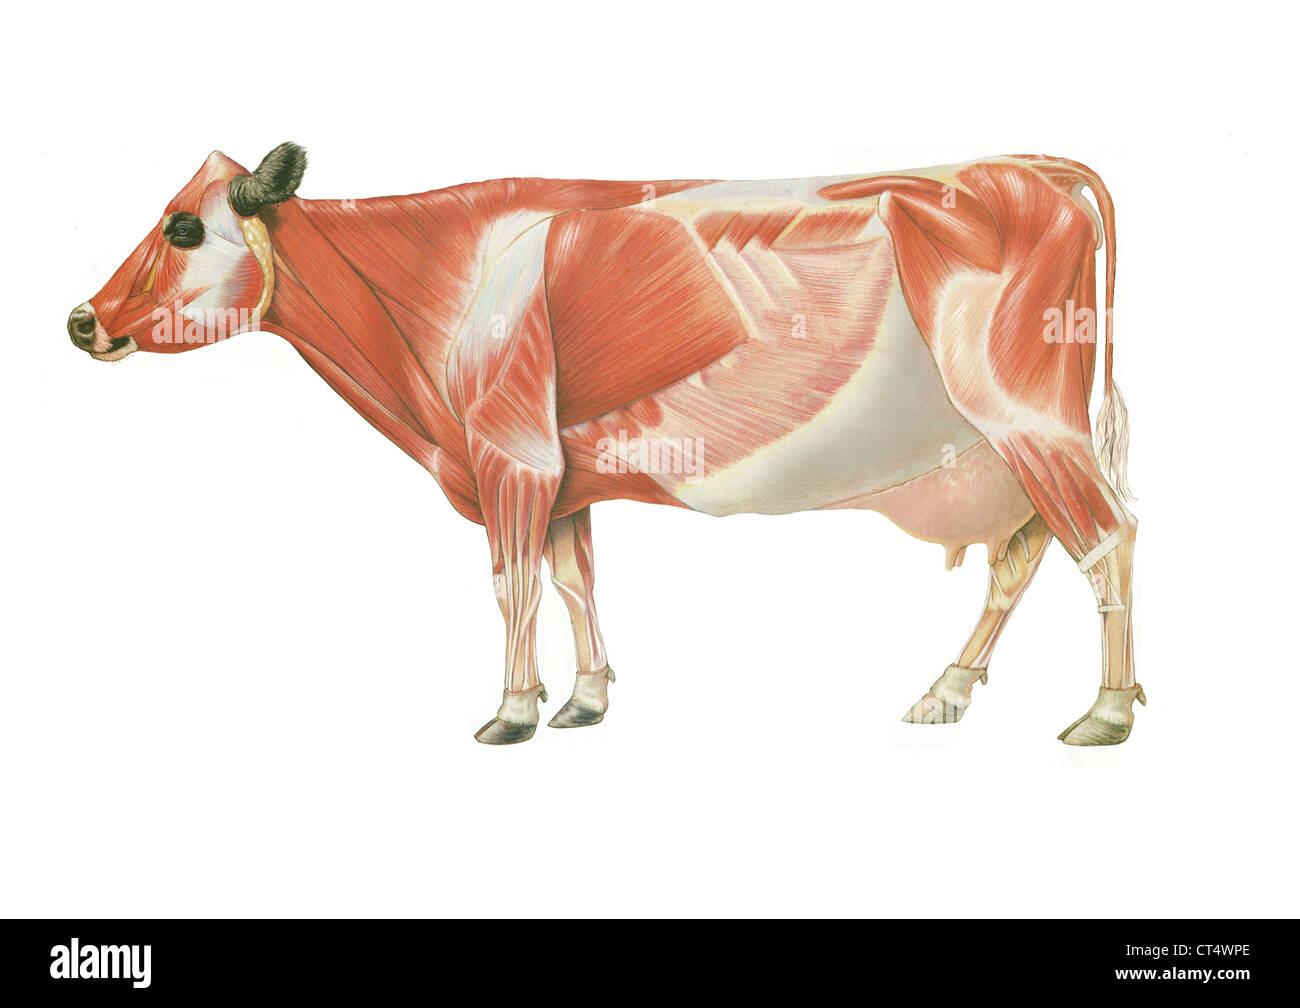 cow circulatory system diagram 2007 kenworth w900 stereo wiring anatomy drawing stock photo 49280518 alamy